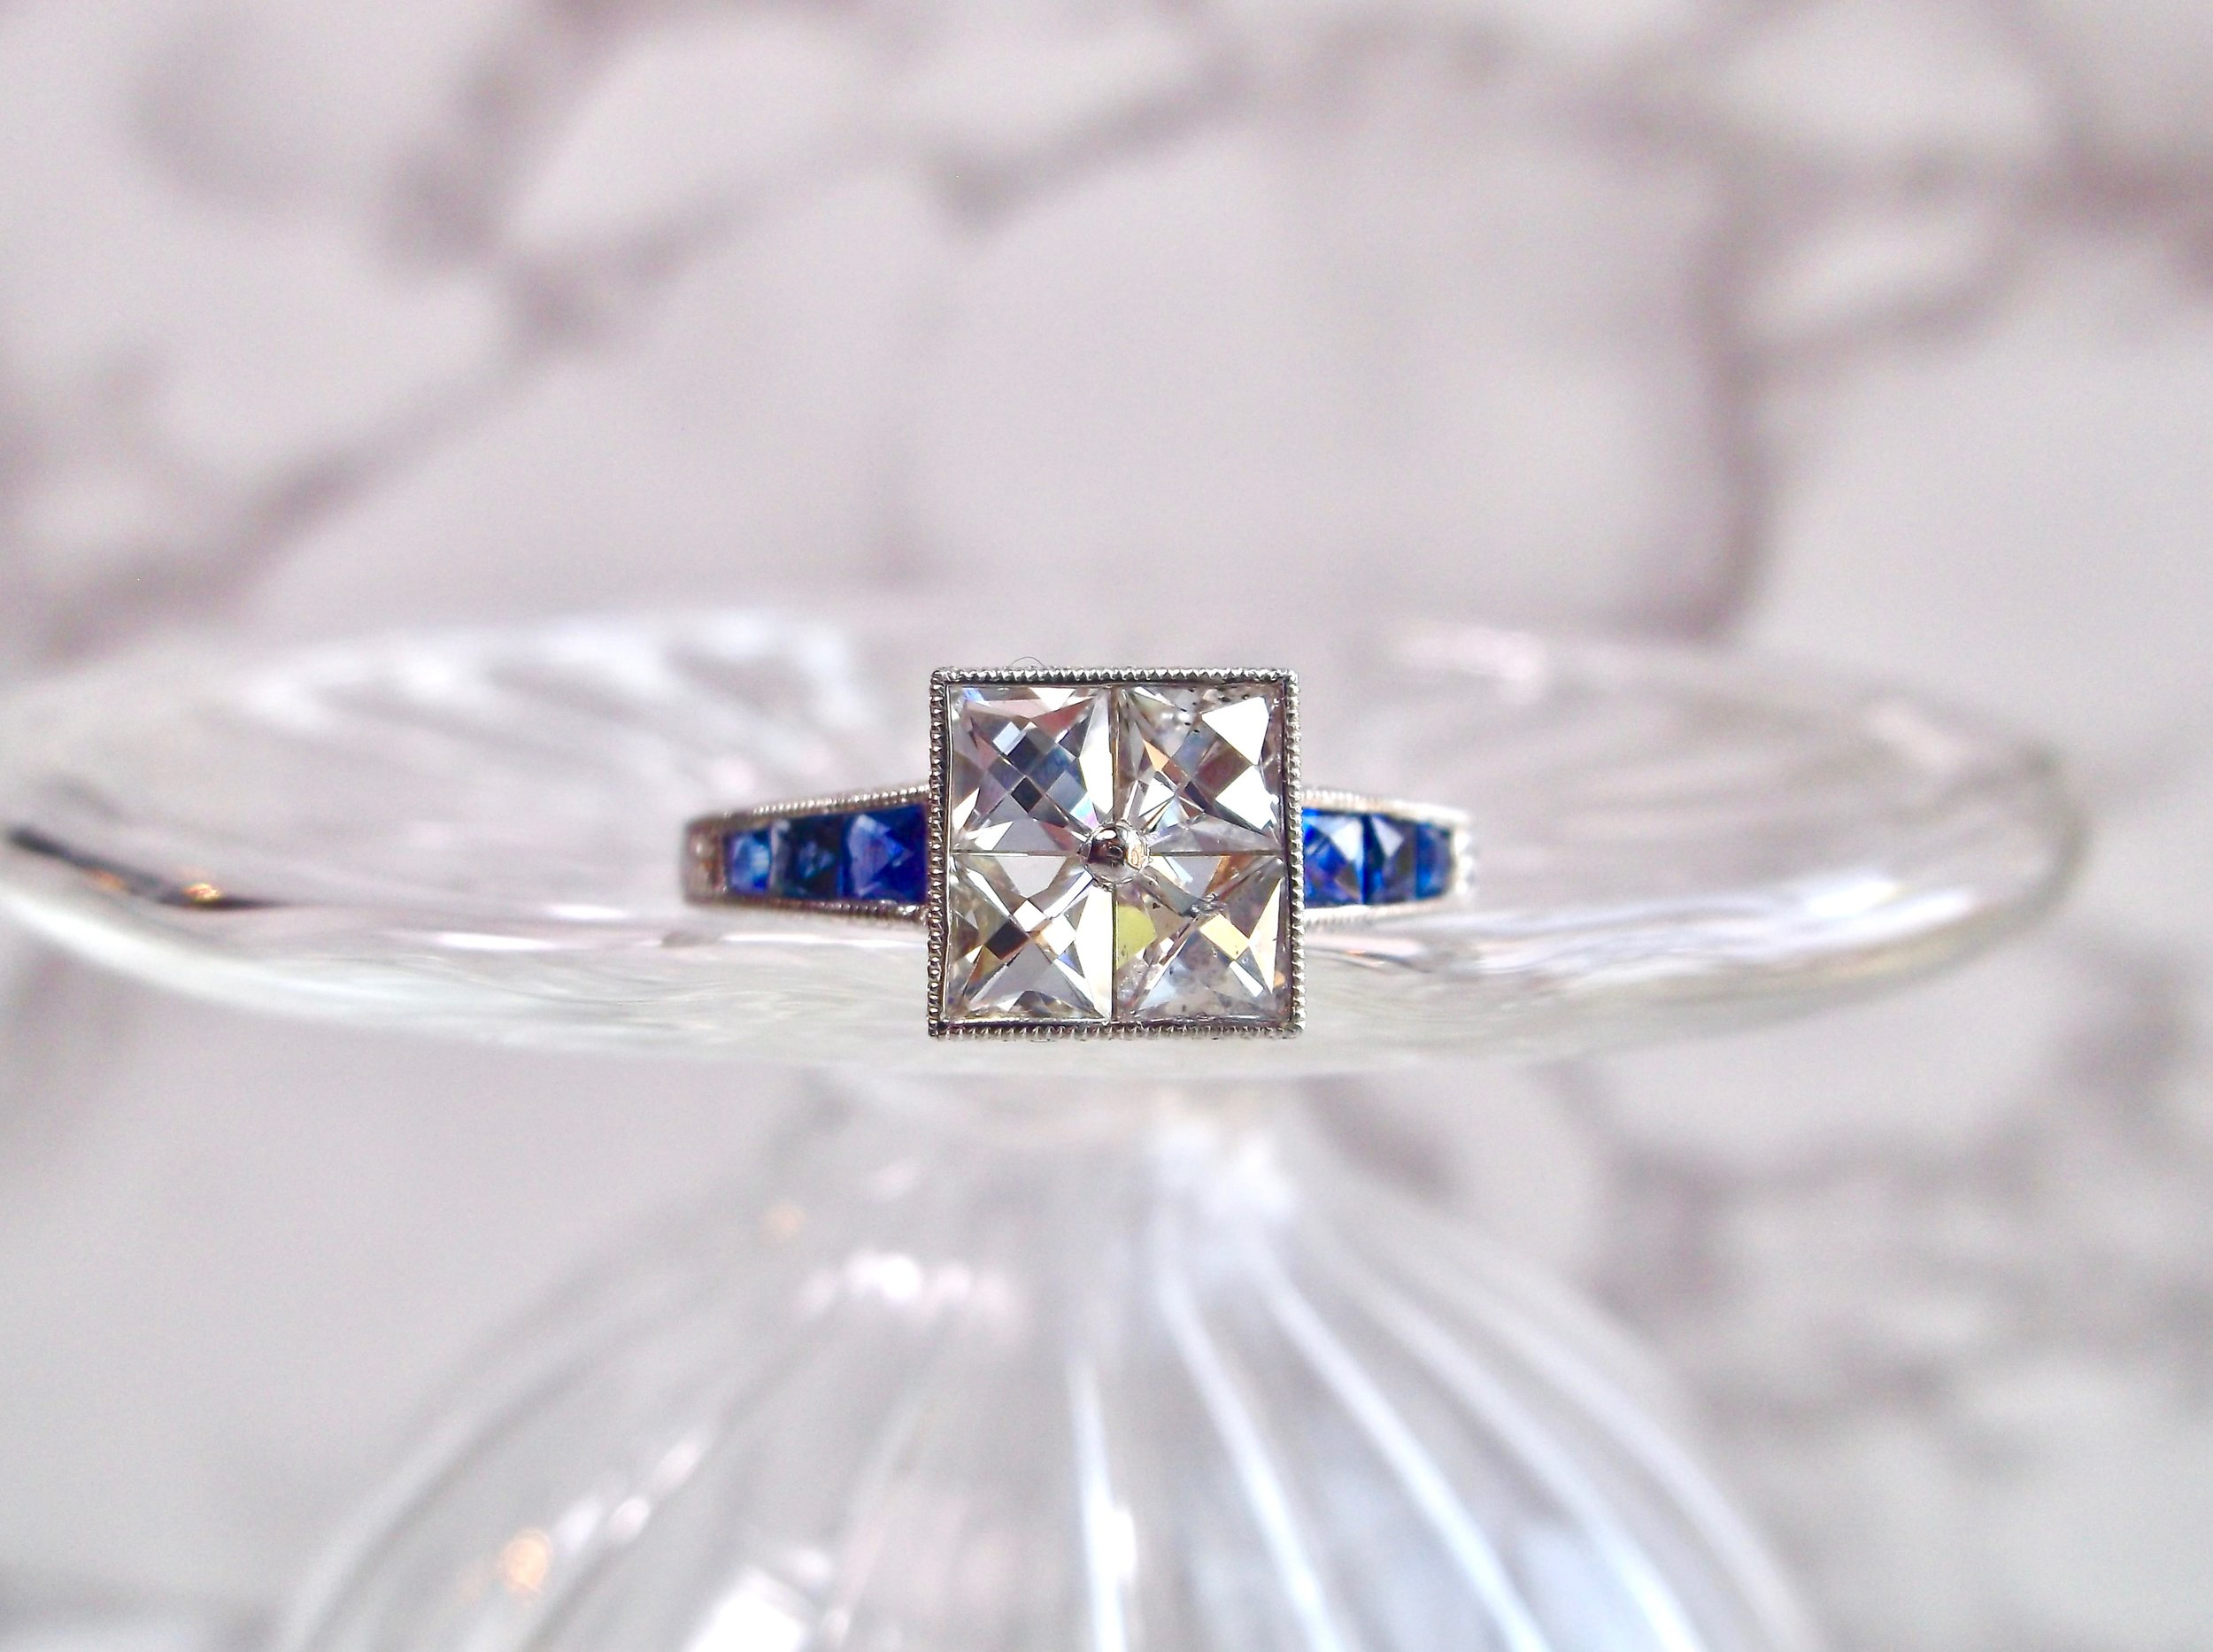 Oh my! We are so in love with this Art Deco inspired French cut diamond and blue sapphire ring! You must click the link below to see all of the hand engraved details on the platinum mounting! Shop this beauty  HERE .